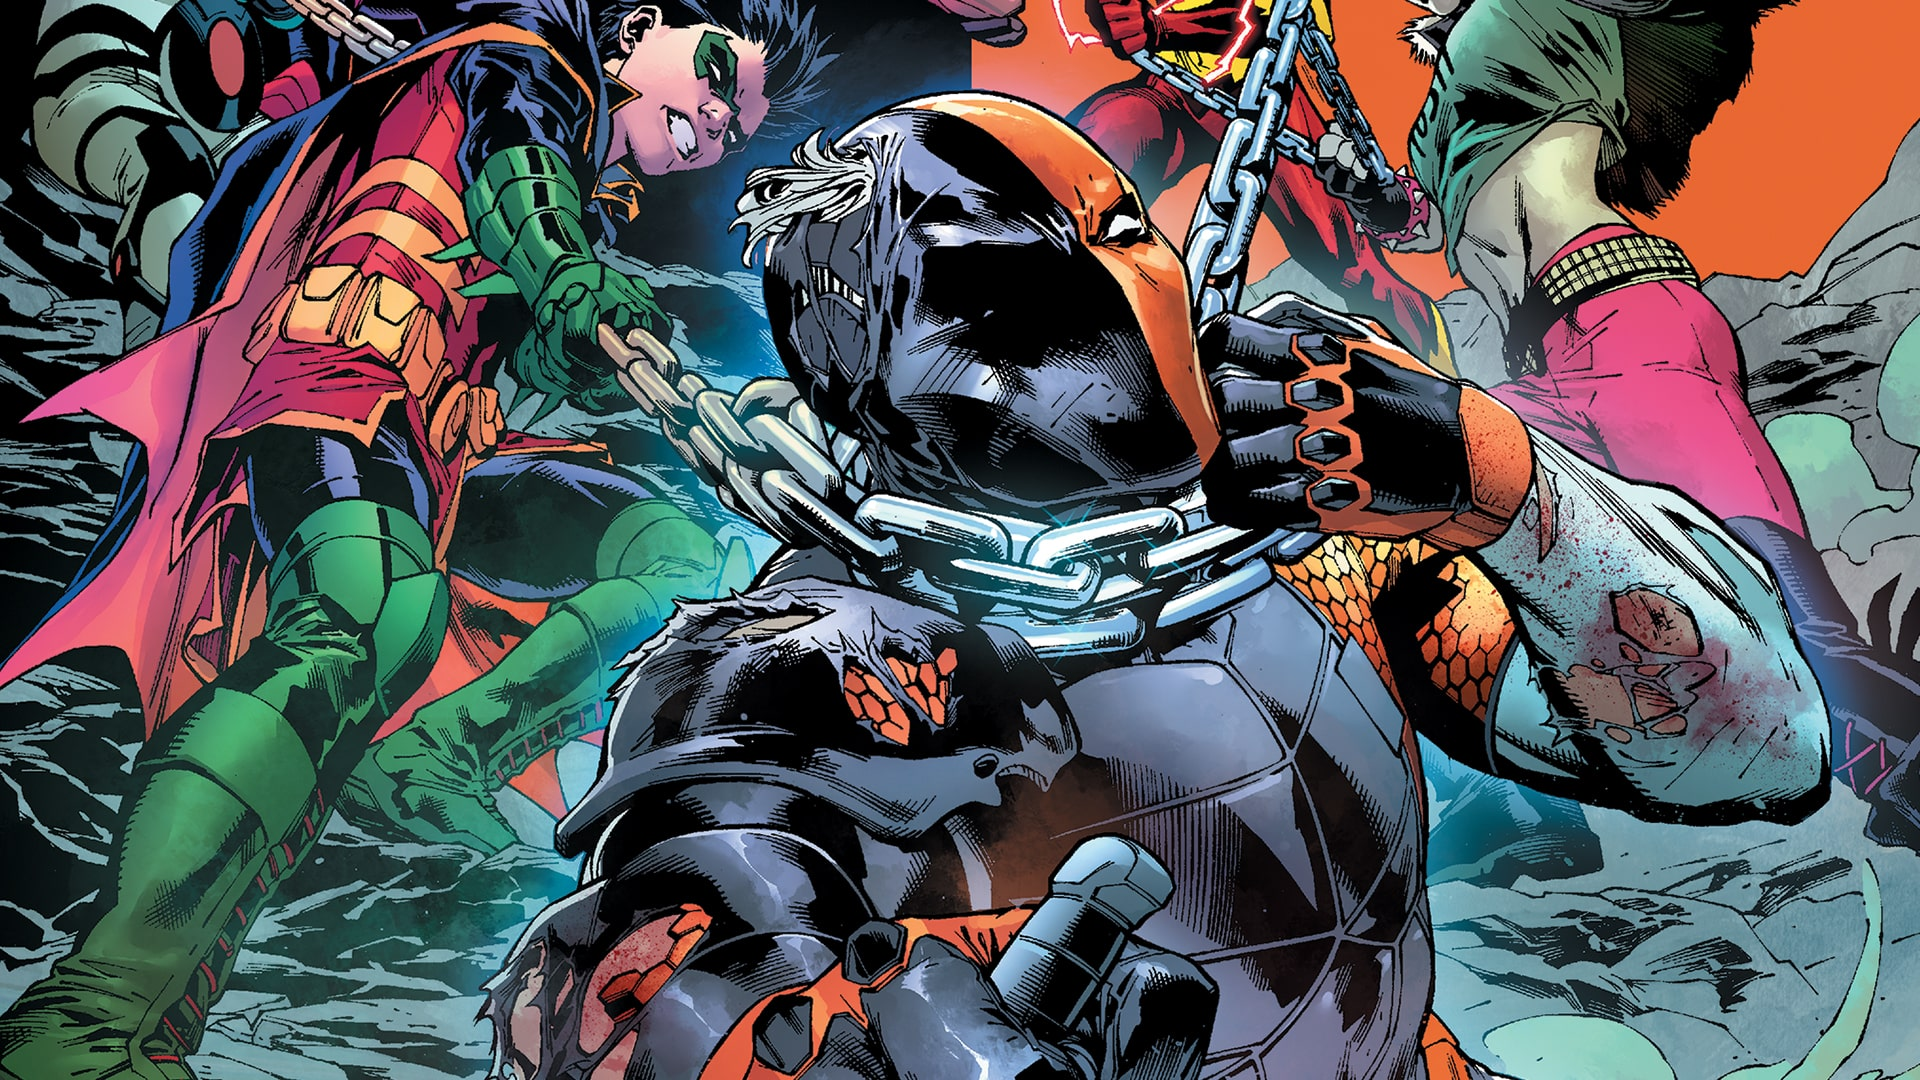 After murdering his therapist and escaping from Arkham Asylum via its revolving door, Deathstroke's body count has continued to rise. Left unchecked, the assassin's exploits will certainly bring Gotham City to its knees. With a renewed sense of vindication, and a chip on his shoulder the size of a giant sequoia, Damien aims his new team of Teen Titans at Deathstroke. Will the team be able to bring the villain to justice or will Deathstroke elude apprehension once again?